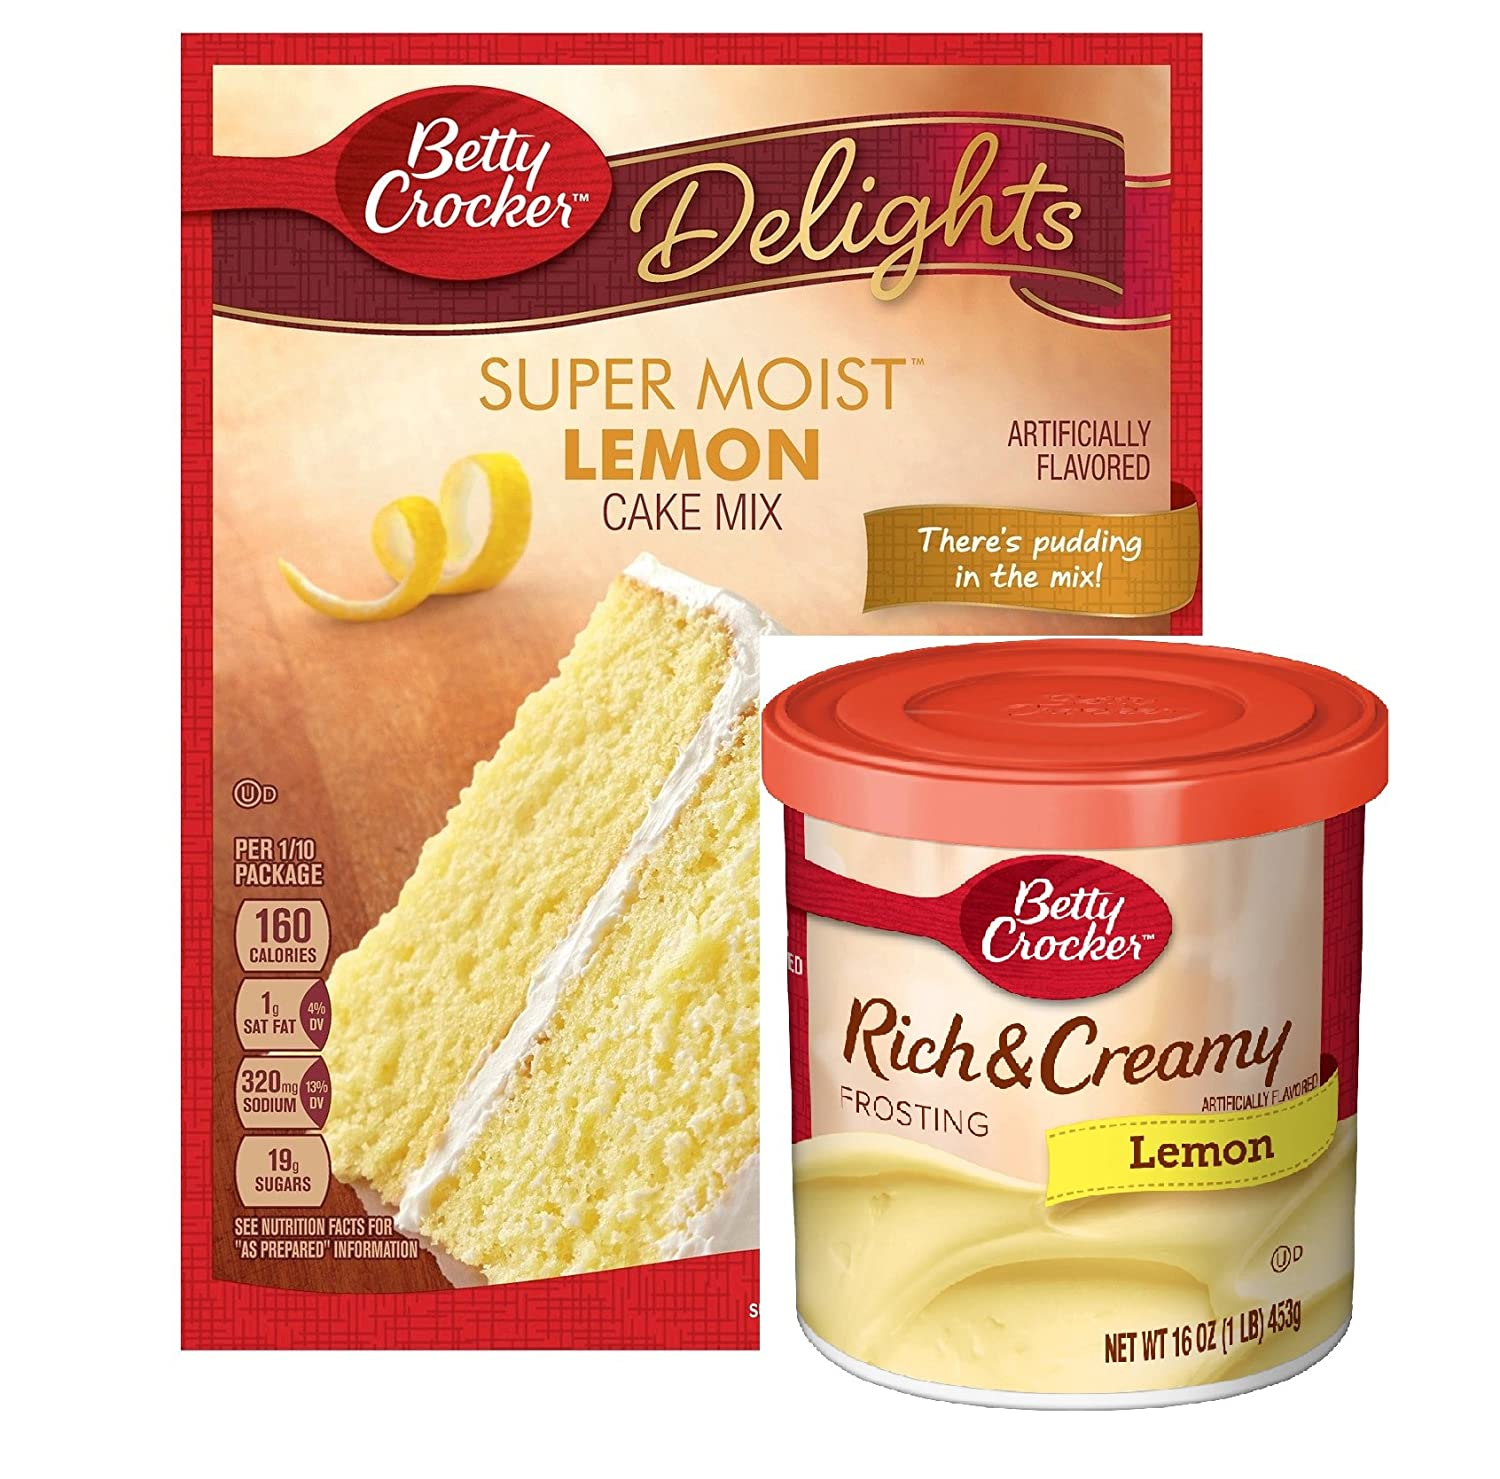 "Betty Crocker Super Moist Lemon Cake Mix and Betty Crocker Rich & Creamy Lemon Frosting Bundle - 1 of Each - 2 Items. ""There's Pudding in the mix!"" Cake Mix"